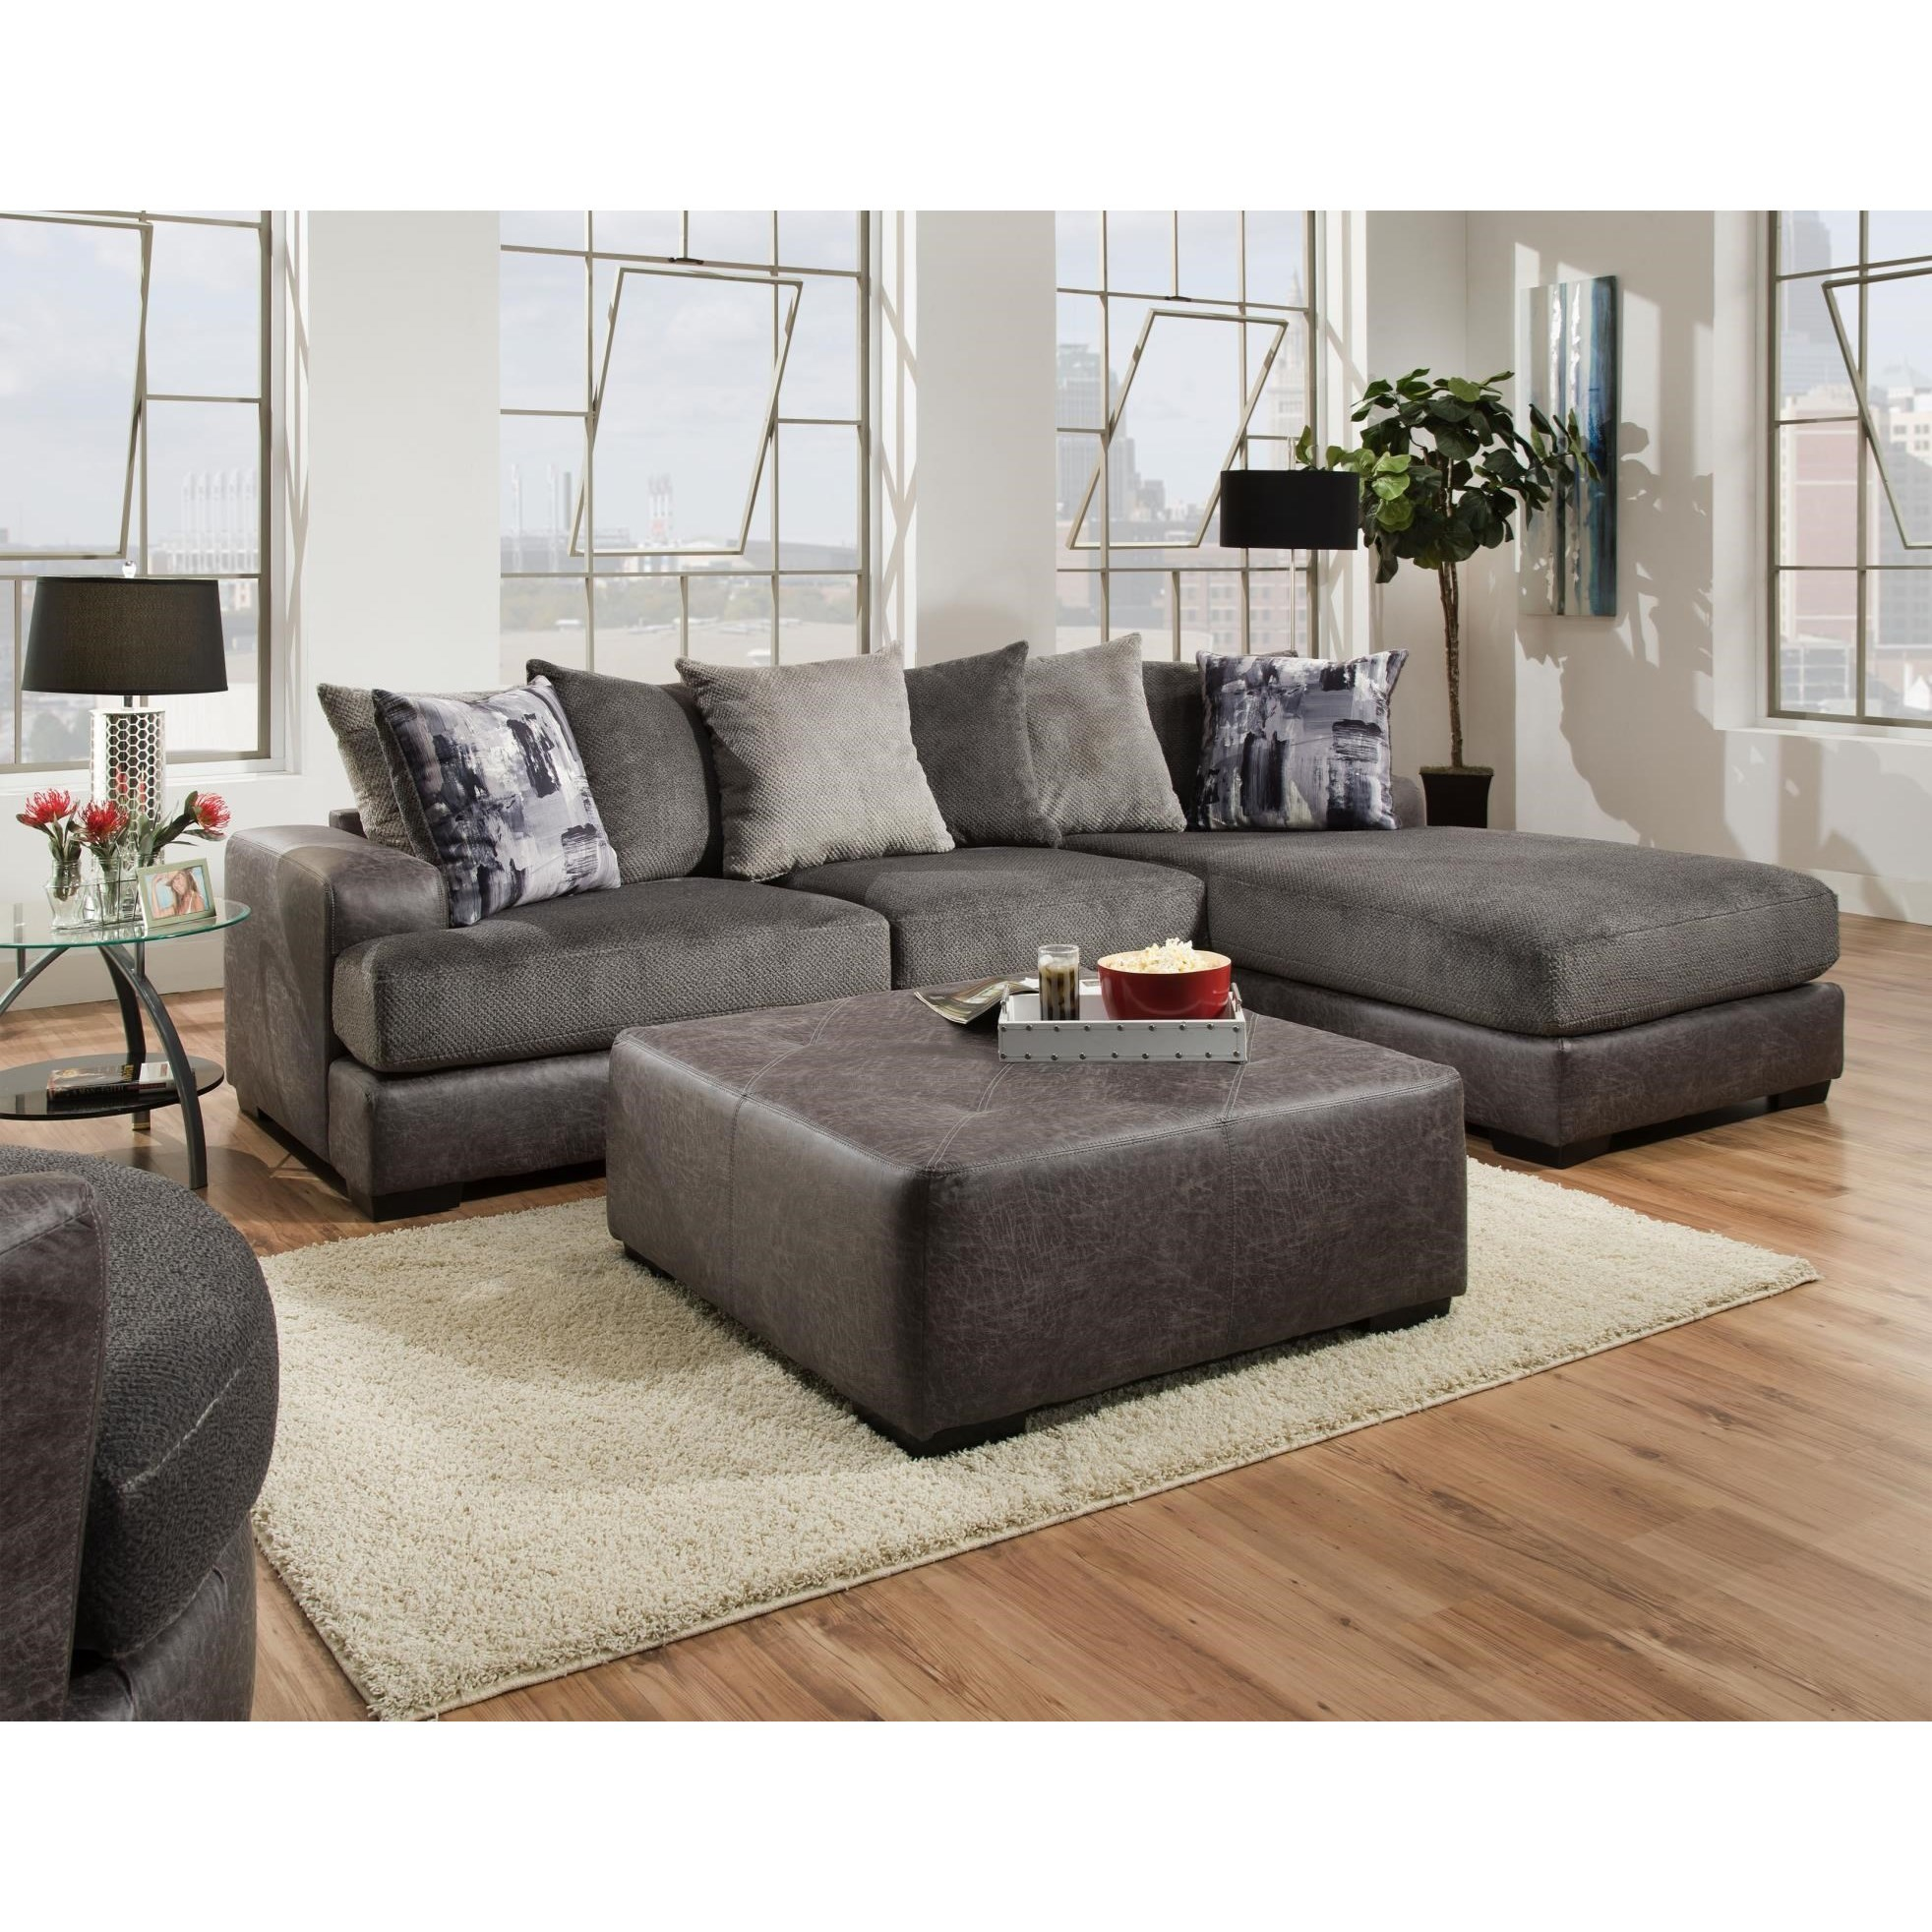 682 2 PC Sectional Sofa by Albany at A1 Furniture & Mattress